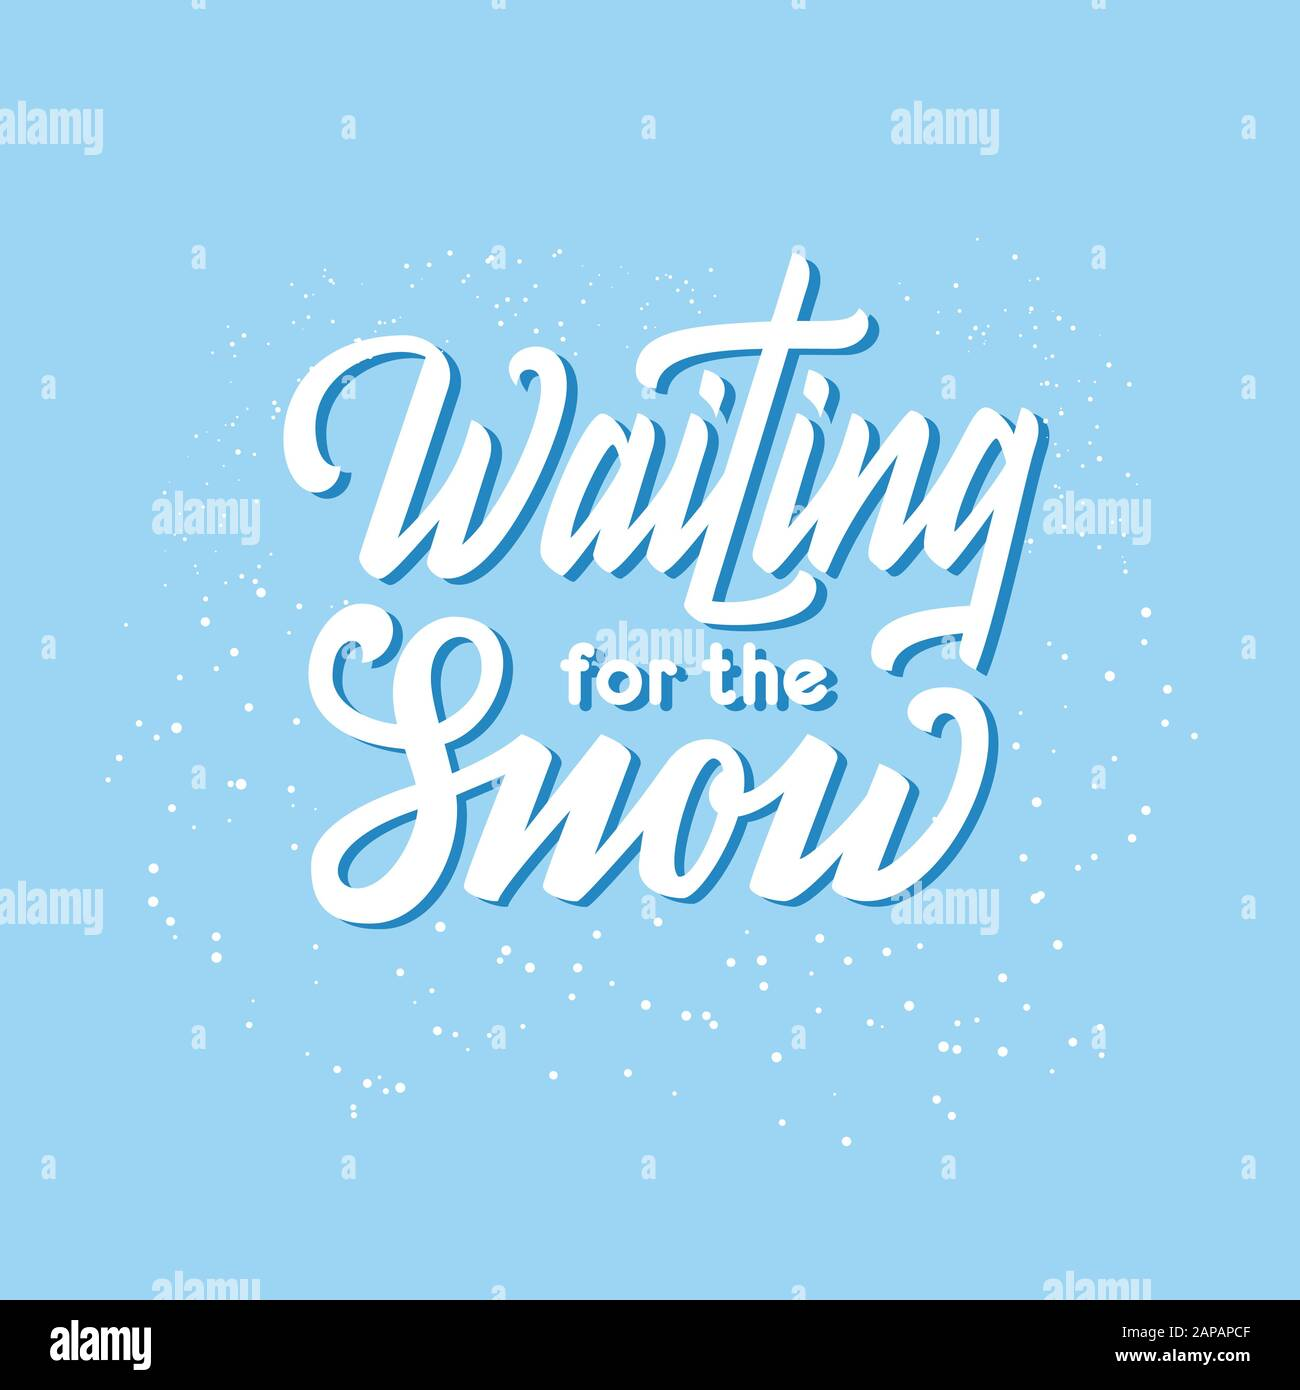 Waiting for the snow quote. White hand drawn calligraphy lettering logo phrase. Winter print design. Stock Vector